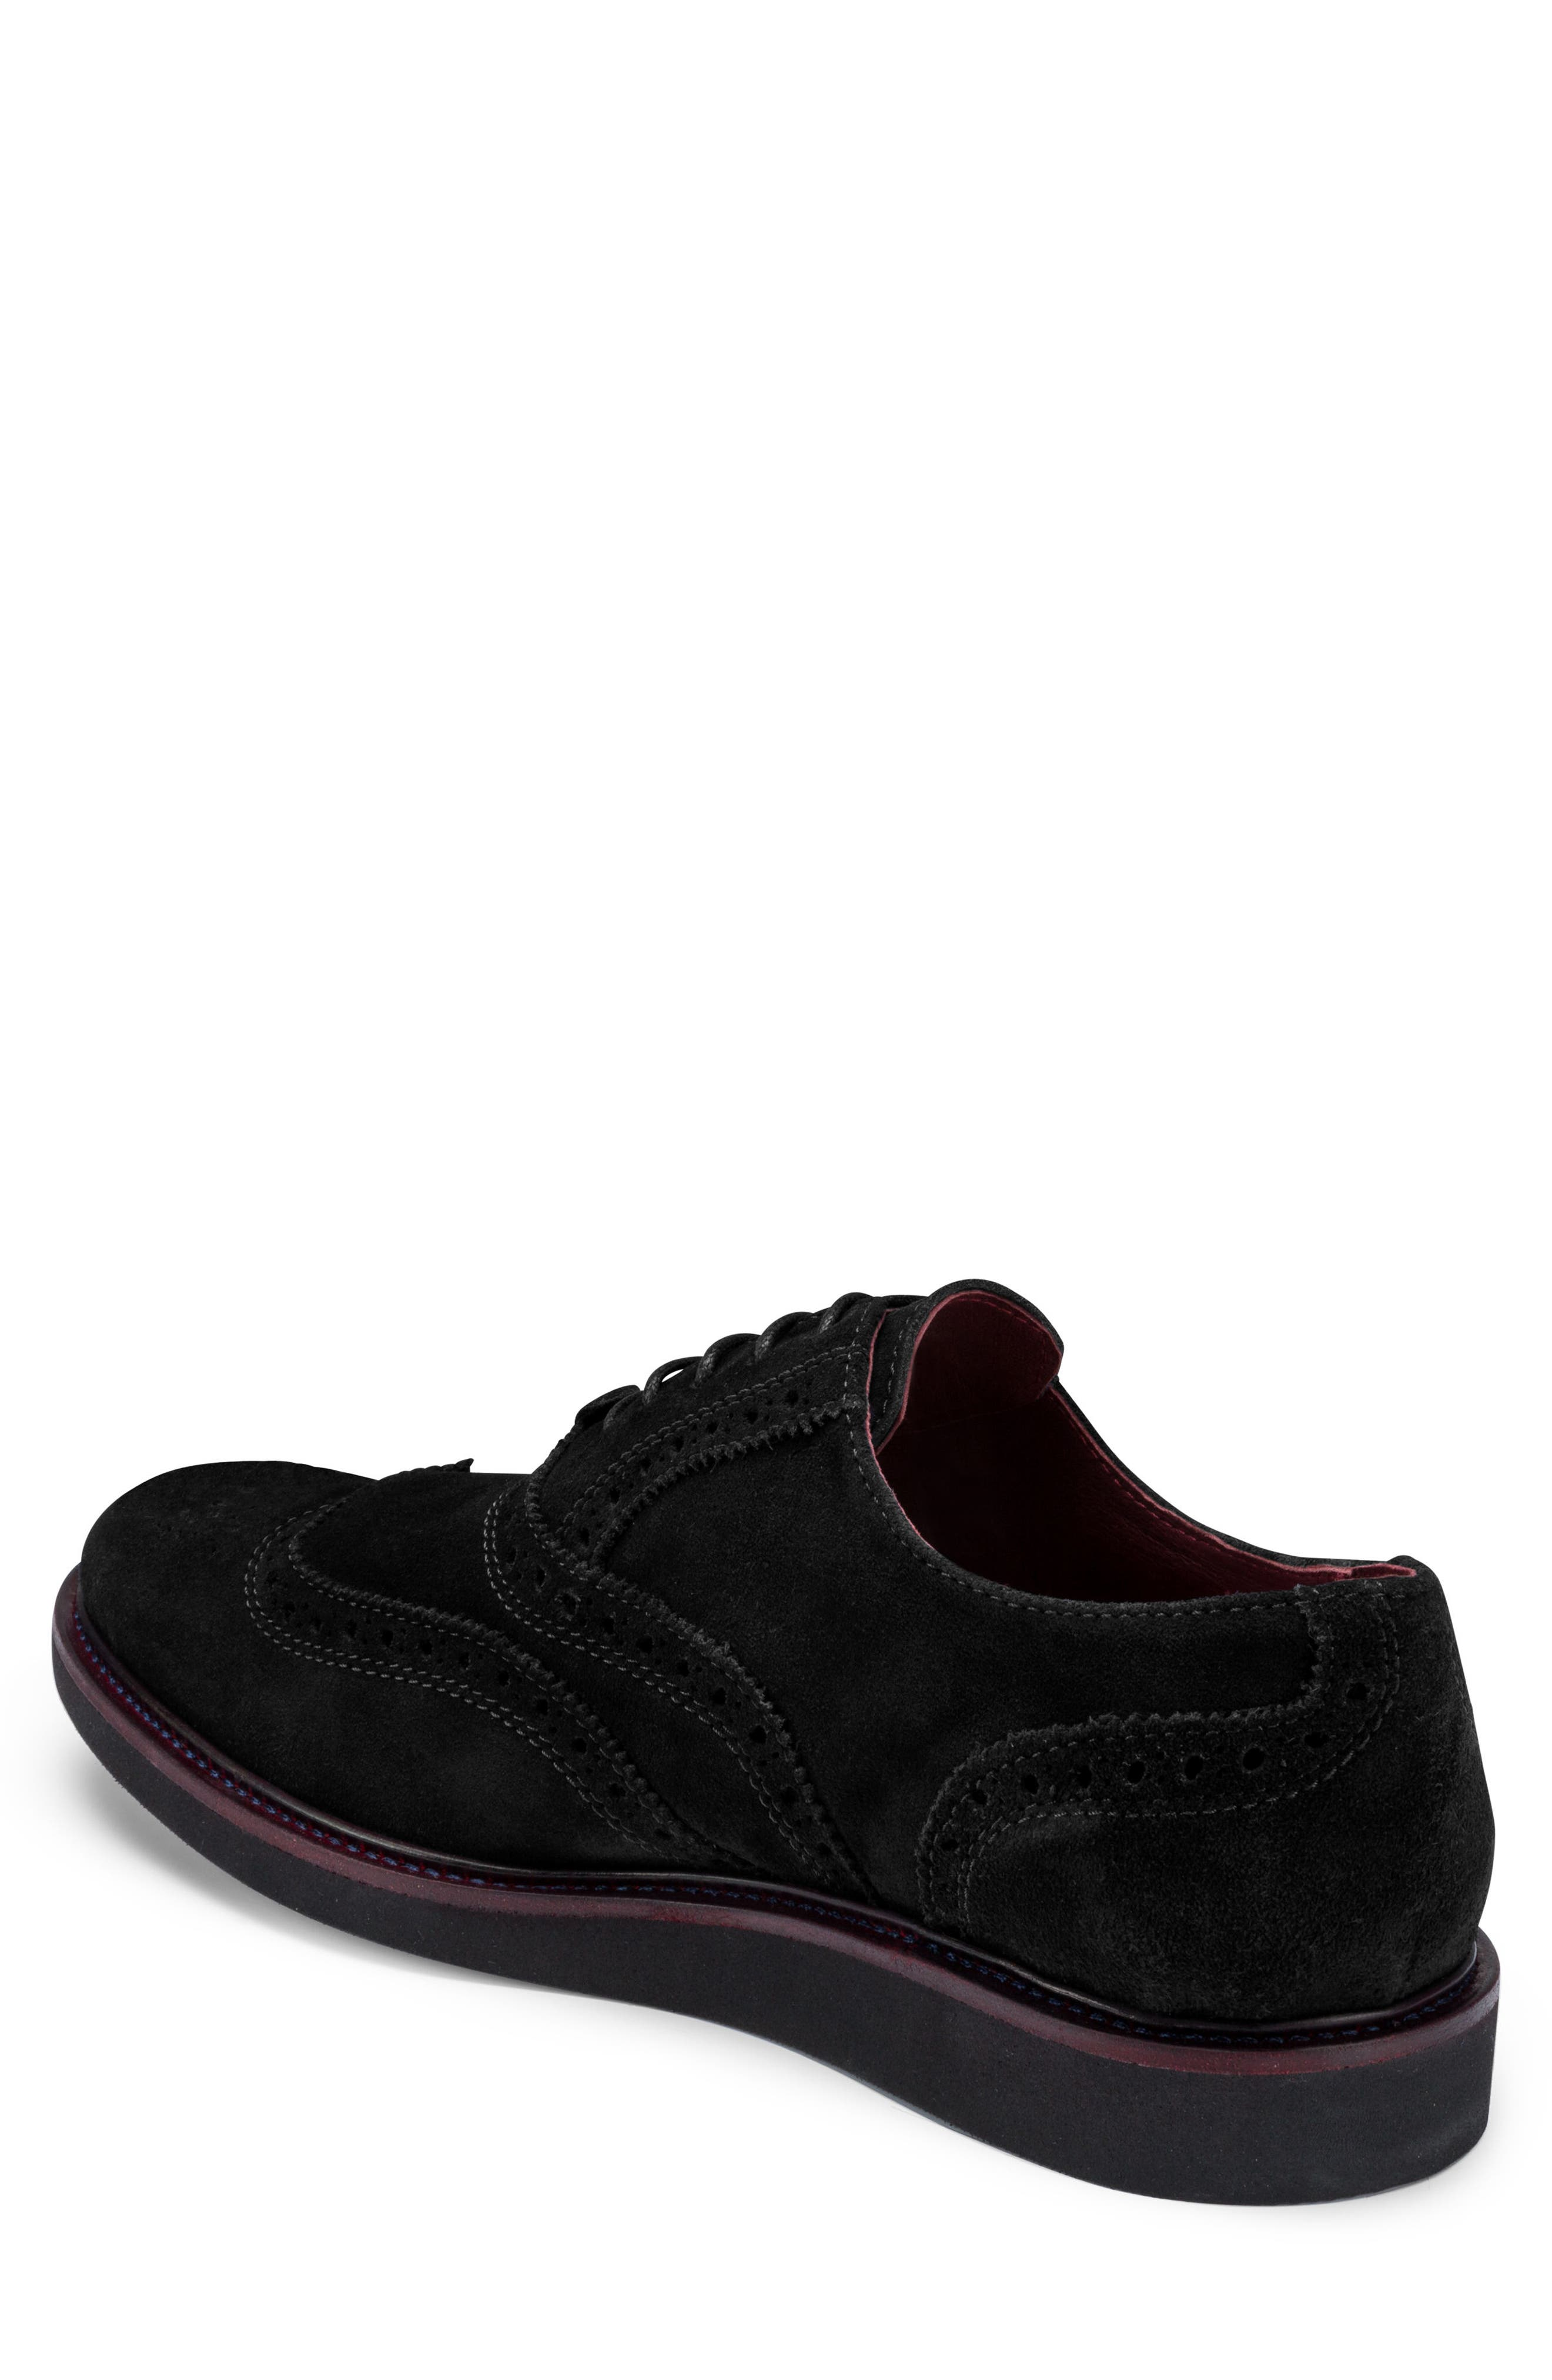 Siena Wingtip,                             Alternate thumbnail 2, color,                             Nero Suede